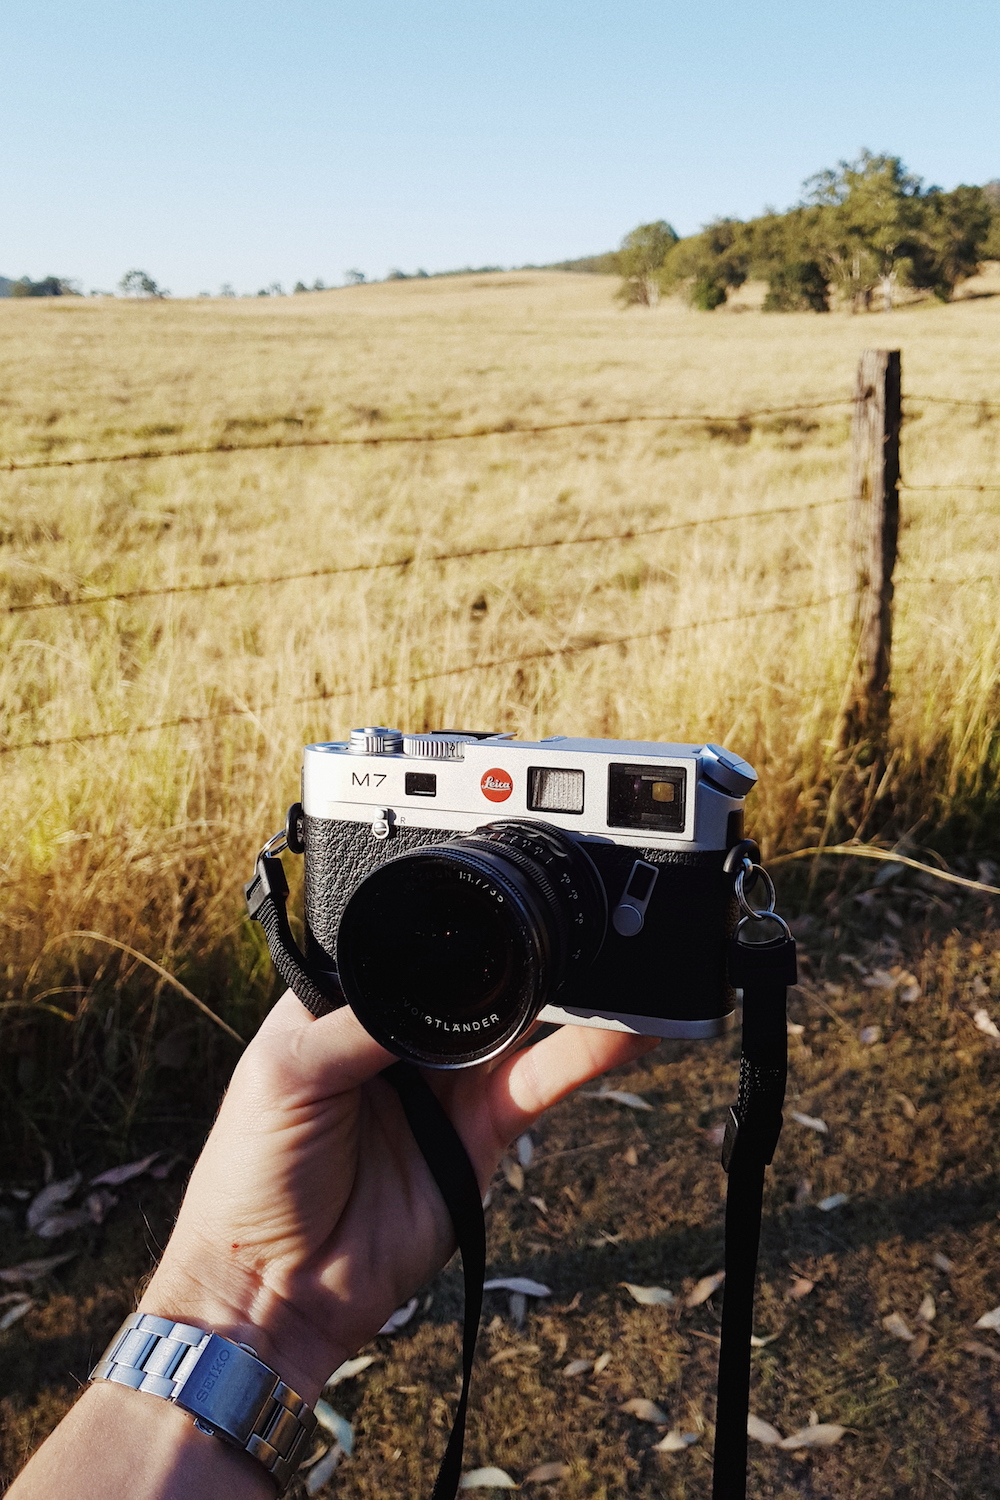 Leica M7 loaded with Kodak Portra 160 at Mount Barney National Park.